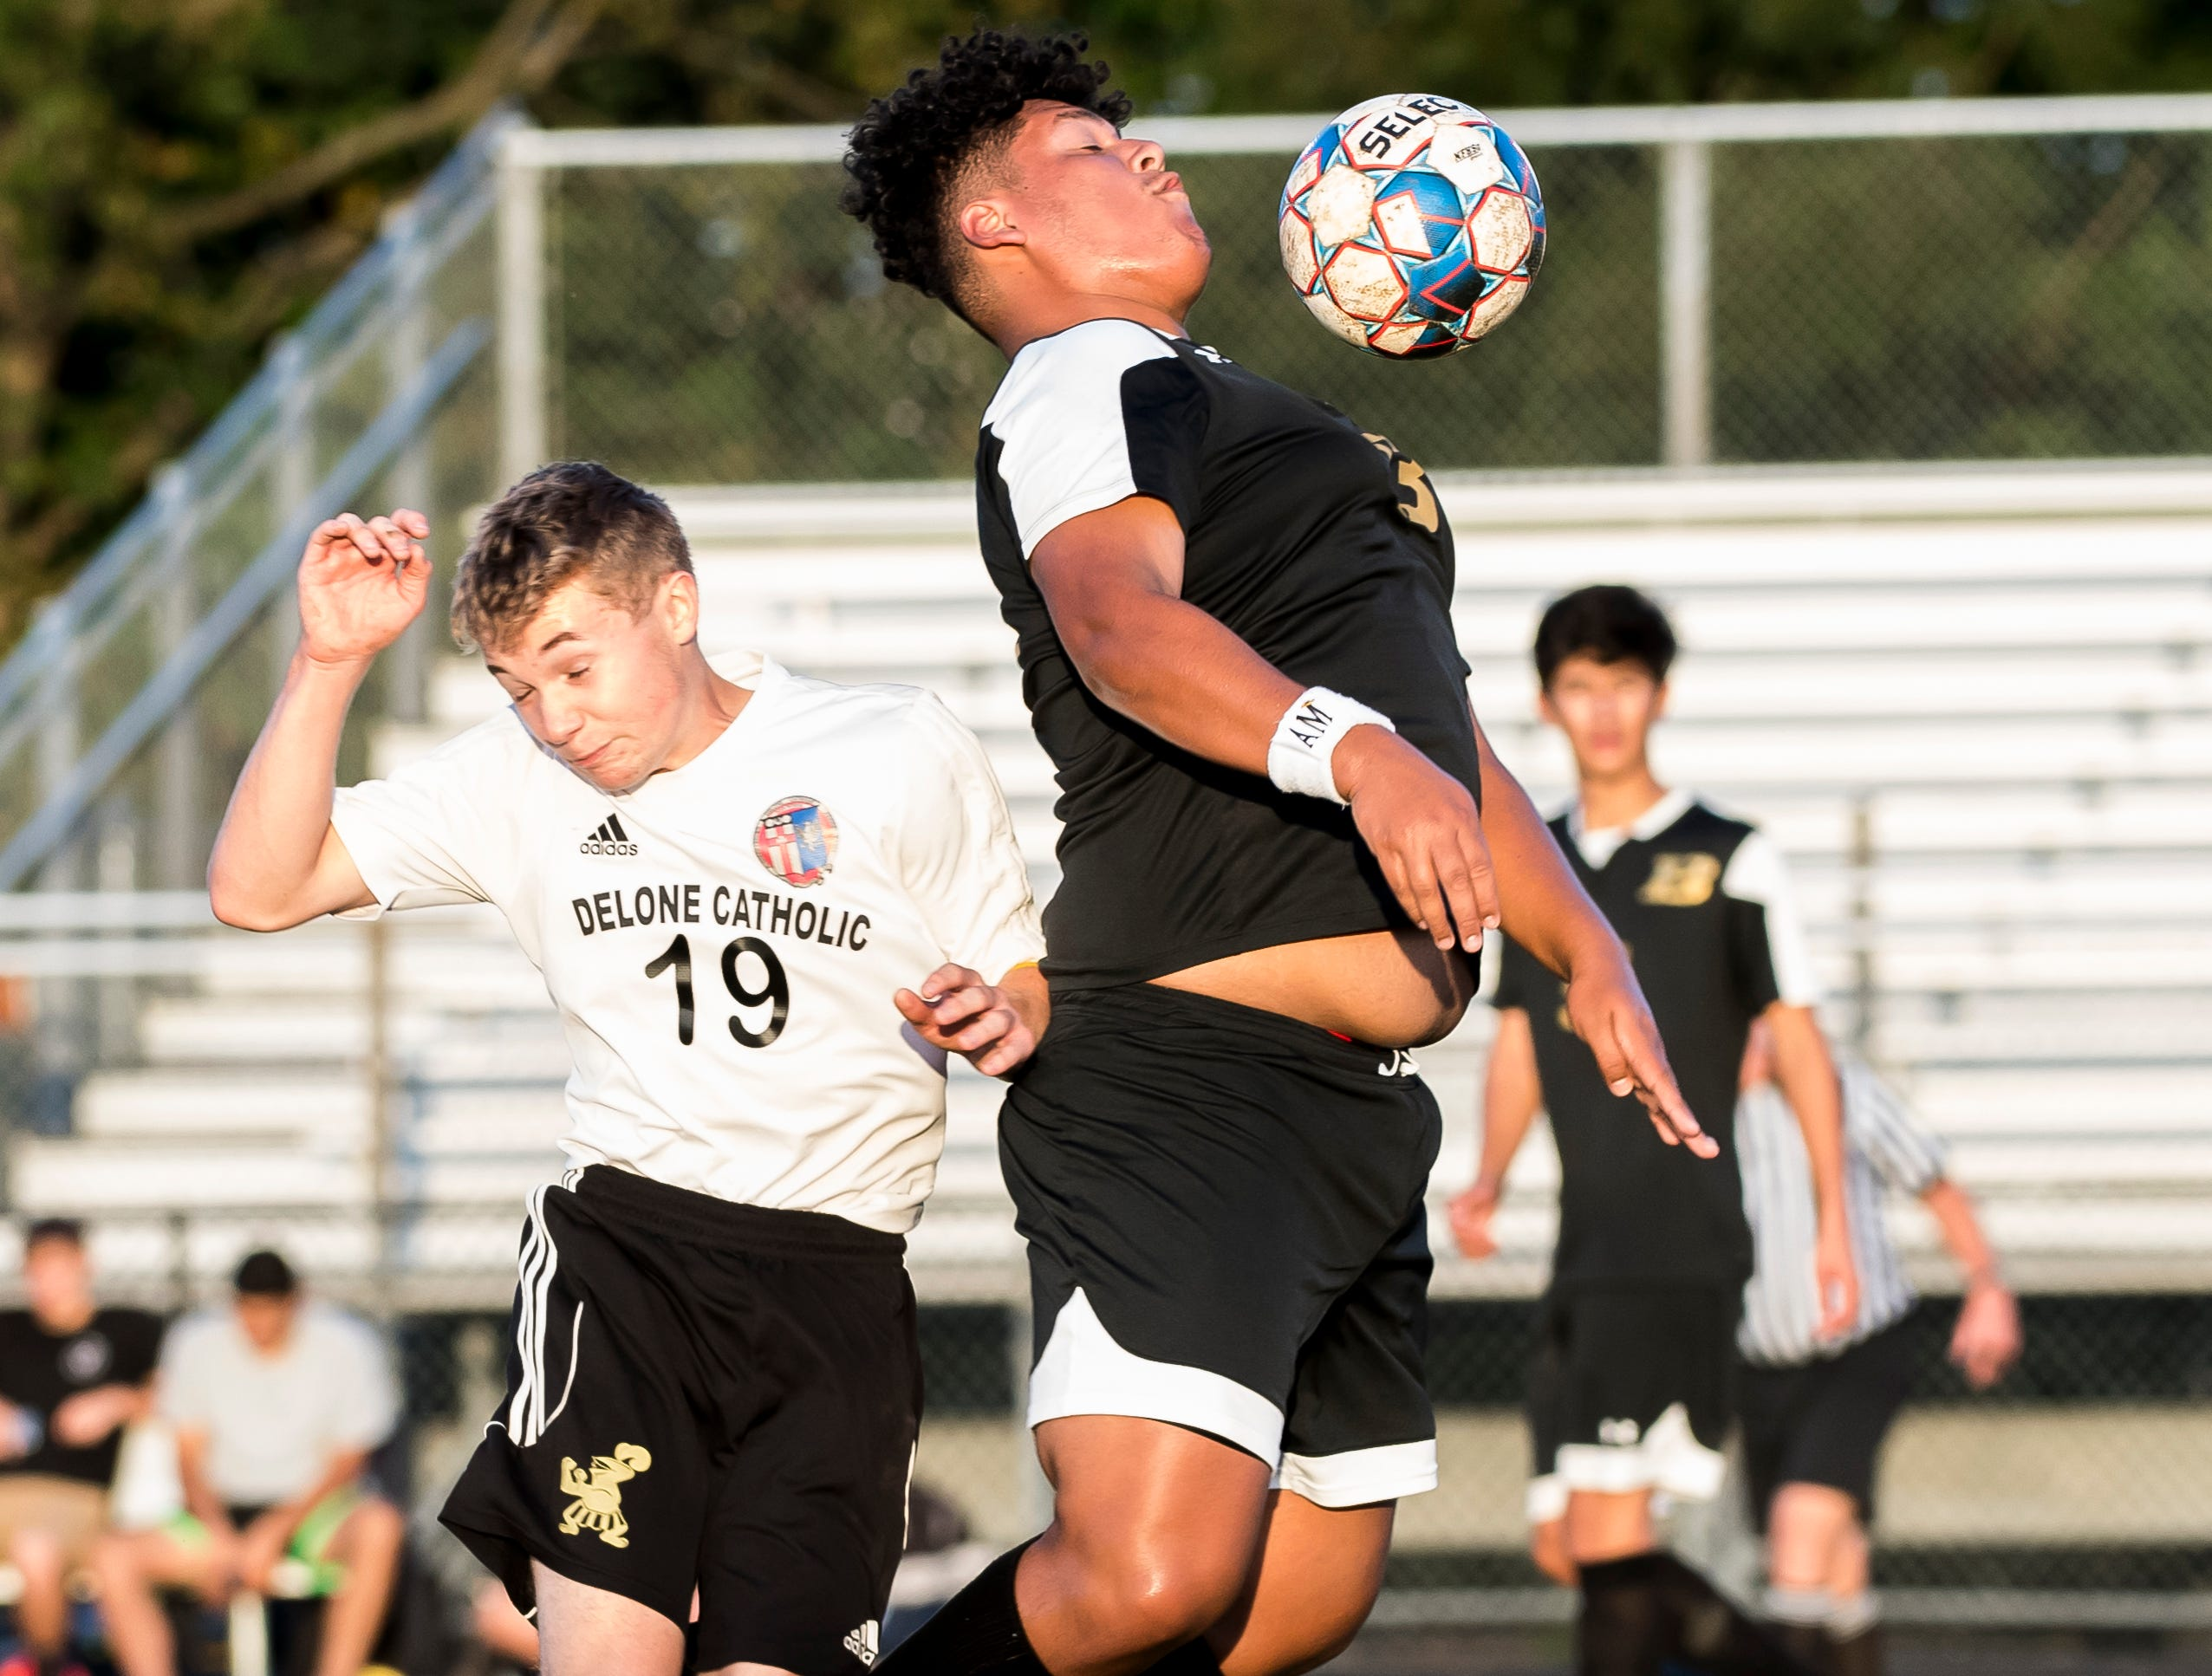 Biglerville's Michael Rayo hits the ball with his chest during play against Delone Catholic on Wednesday, October 3, 2018. The Canners won 3-0.